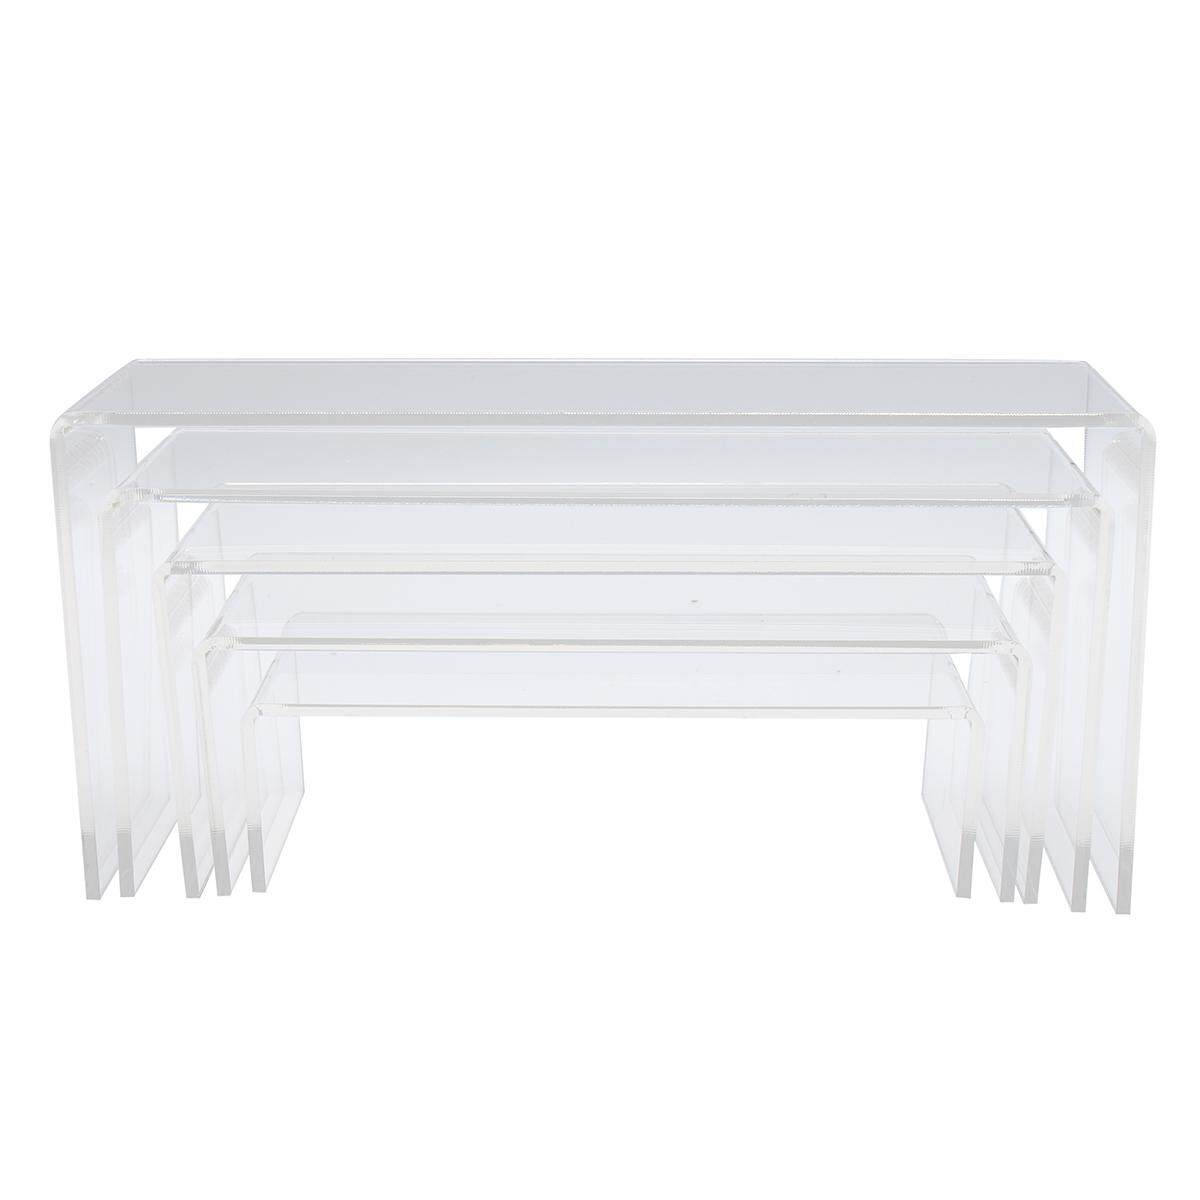 5pcs Clear Acrylic Perspex Sturdy Jewellery Display Riser Set Stand Showcase 4mm By Glimmer.